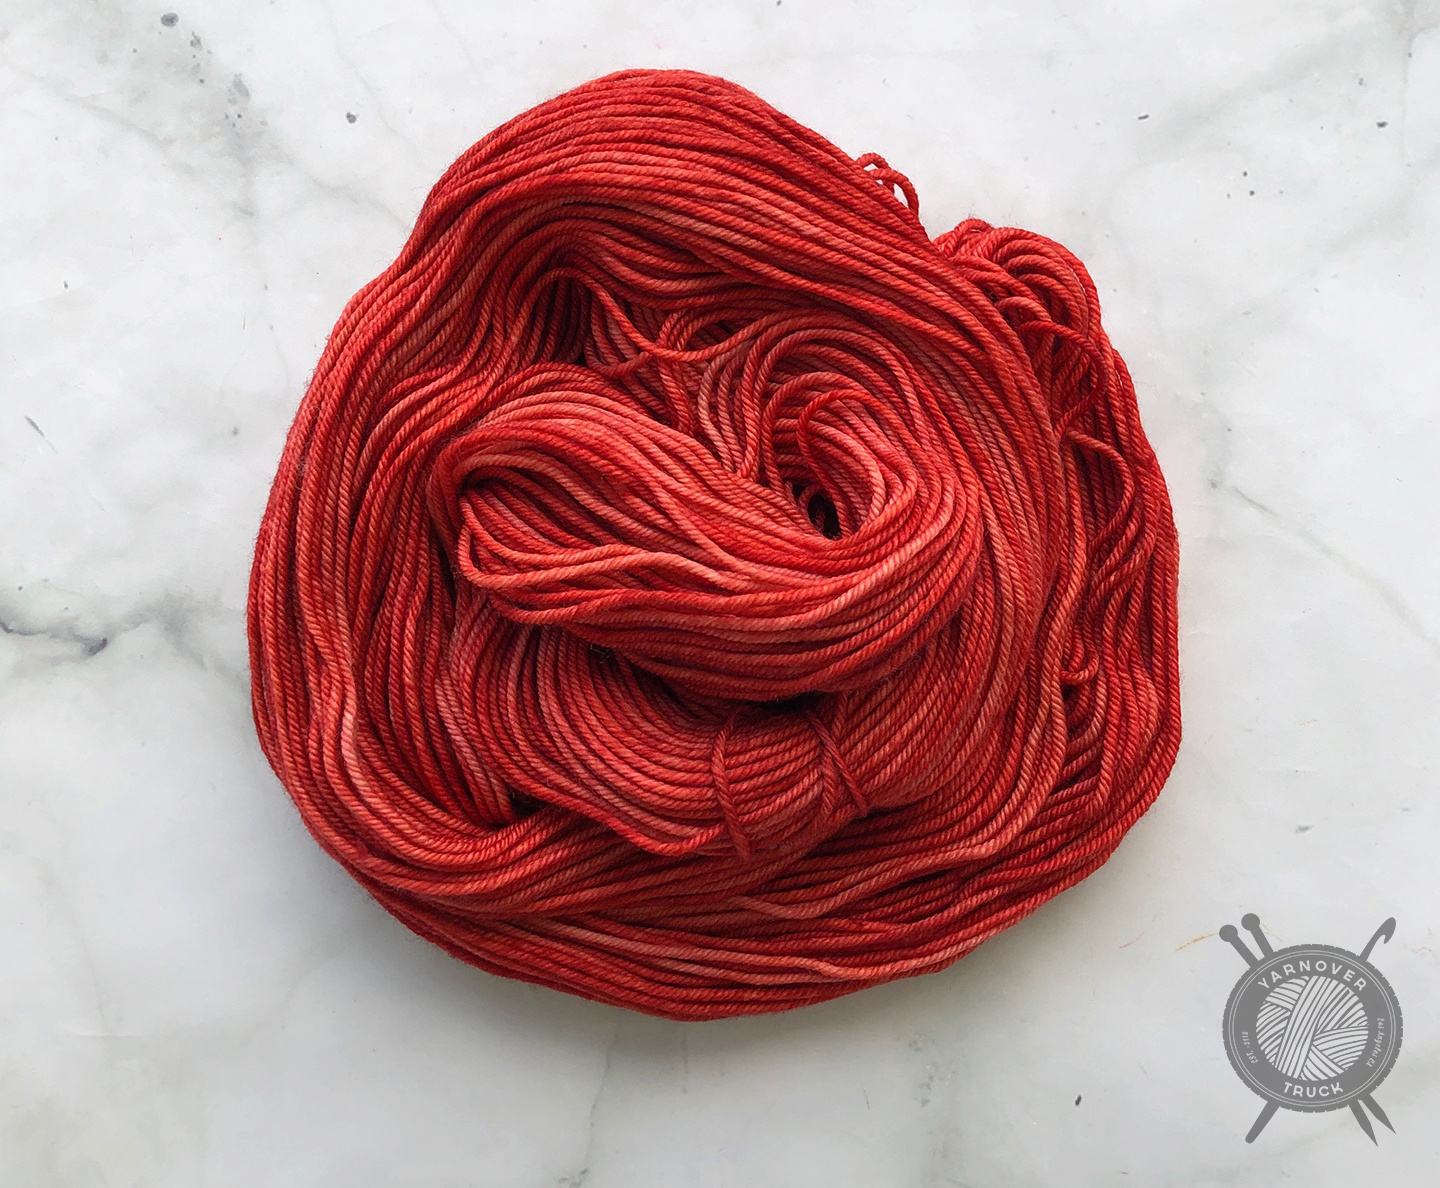 Anzula Paprika on For Better or Worsted from Anzula Luxury Fibers